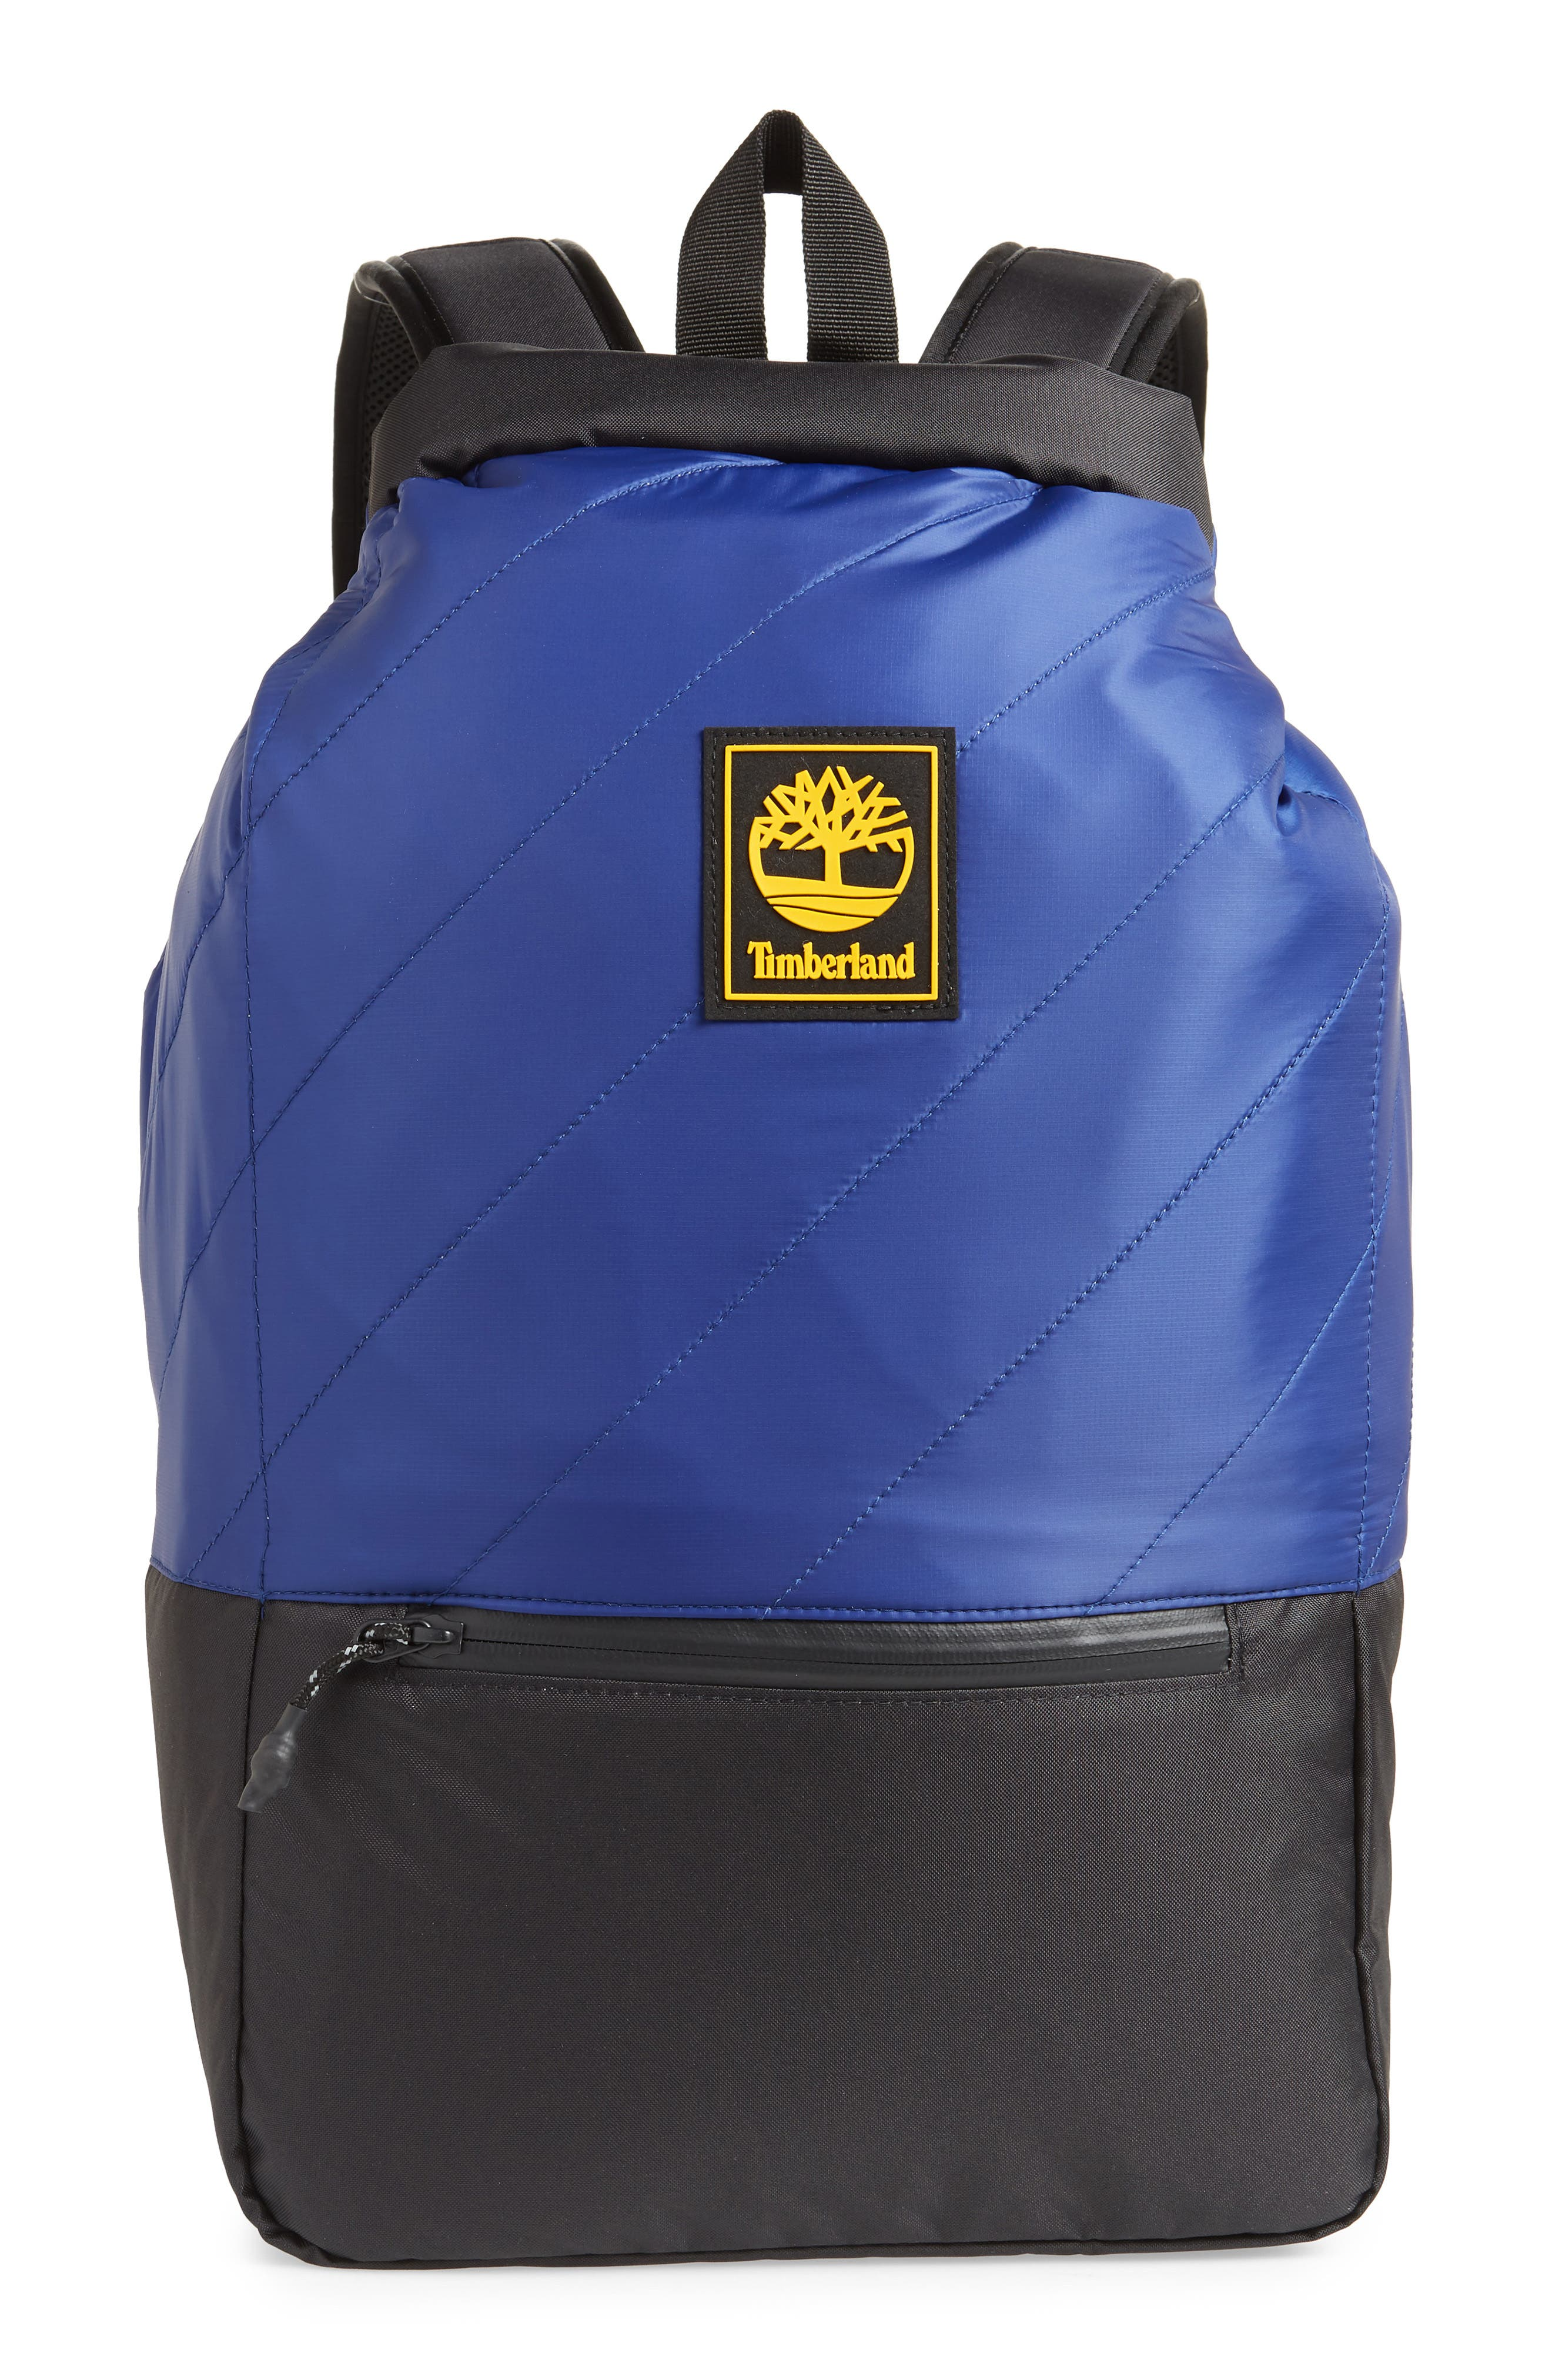 Timberland Roll Top Backpack - Blue